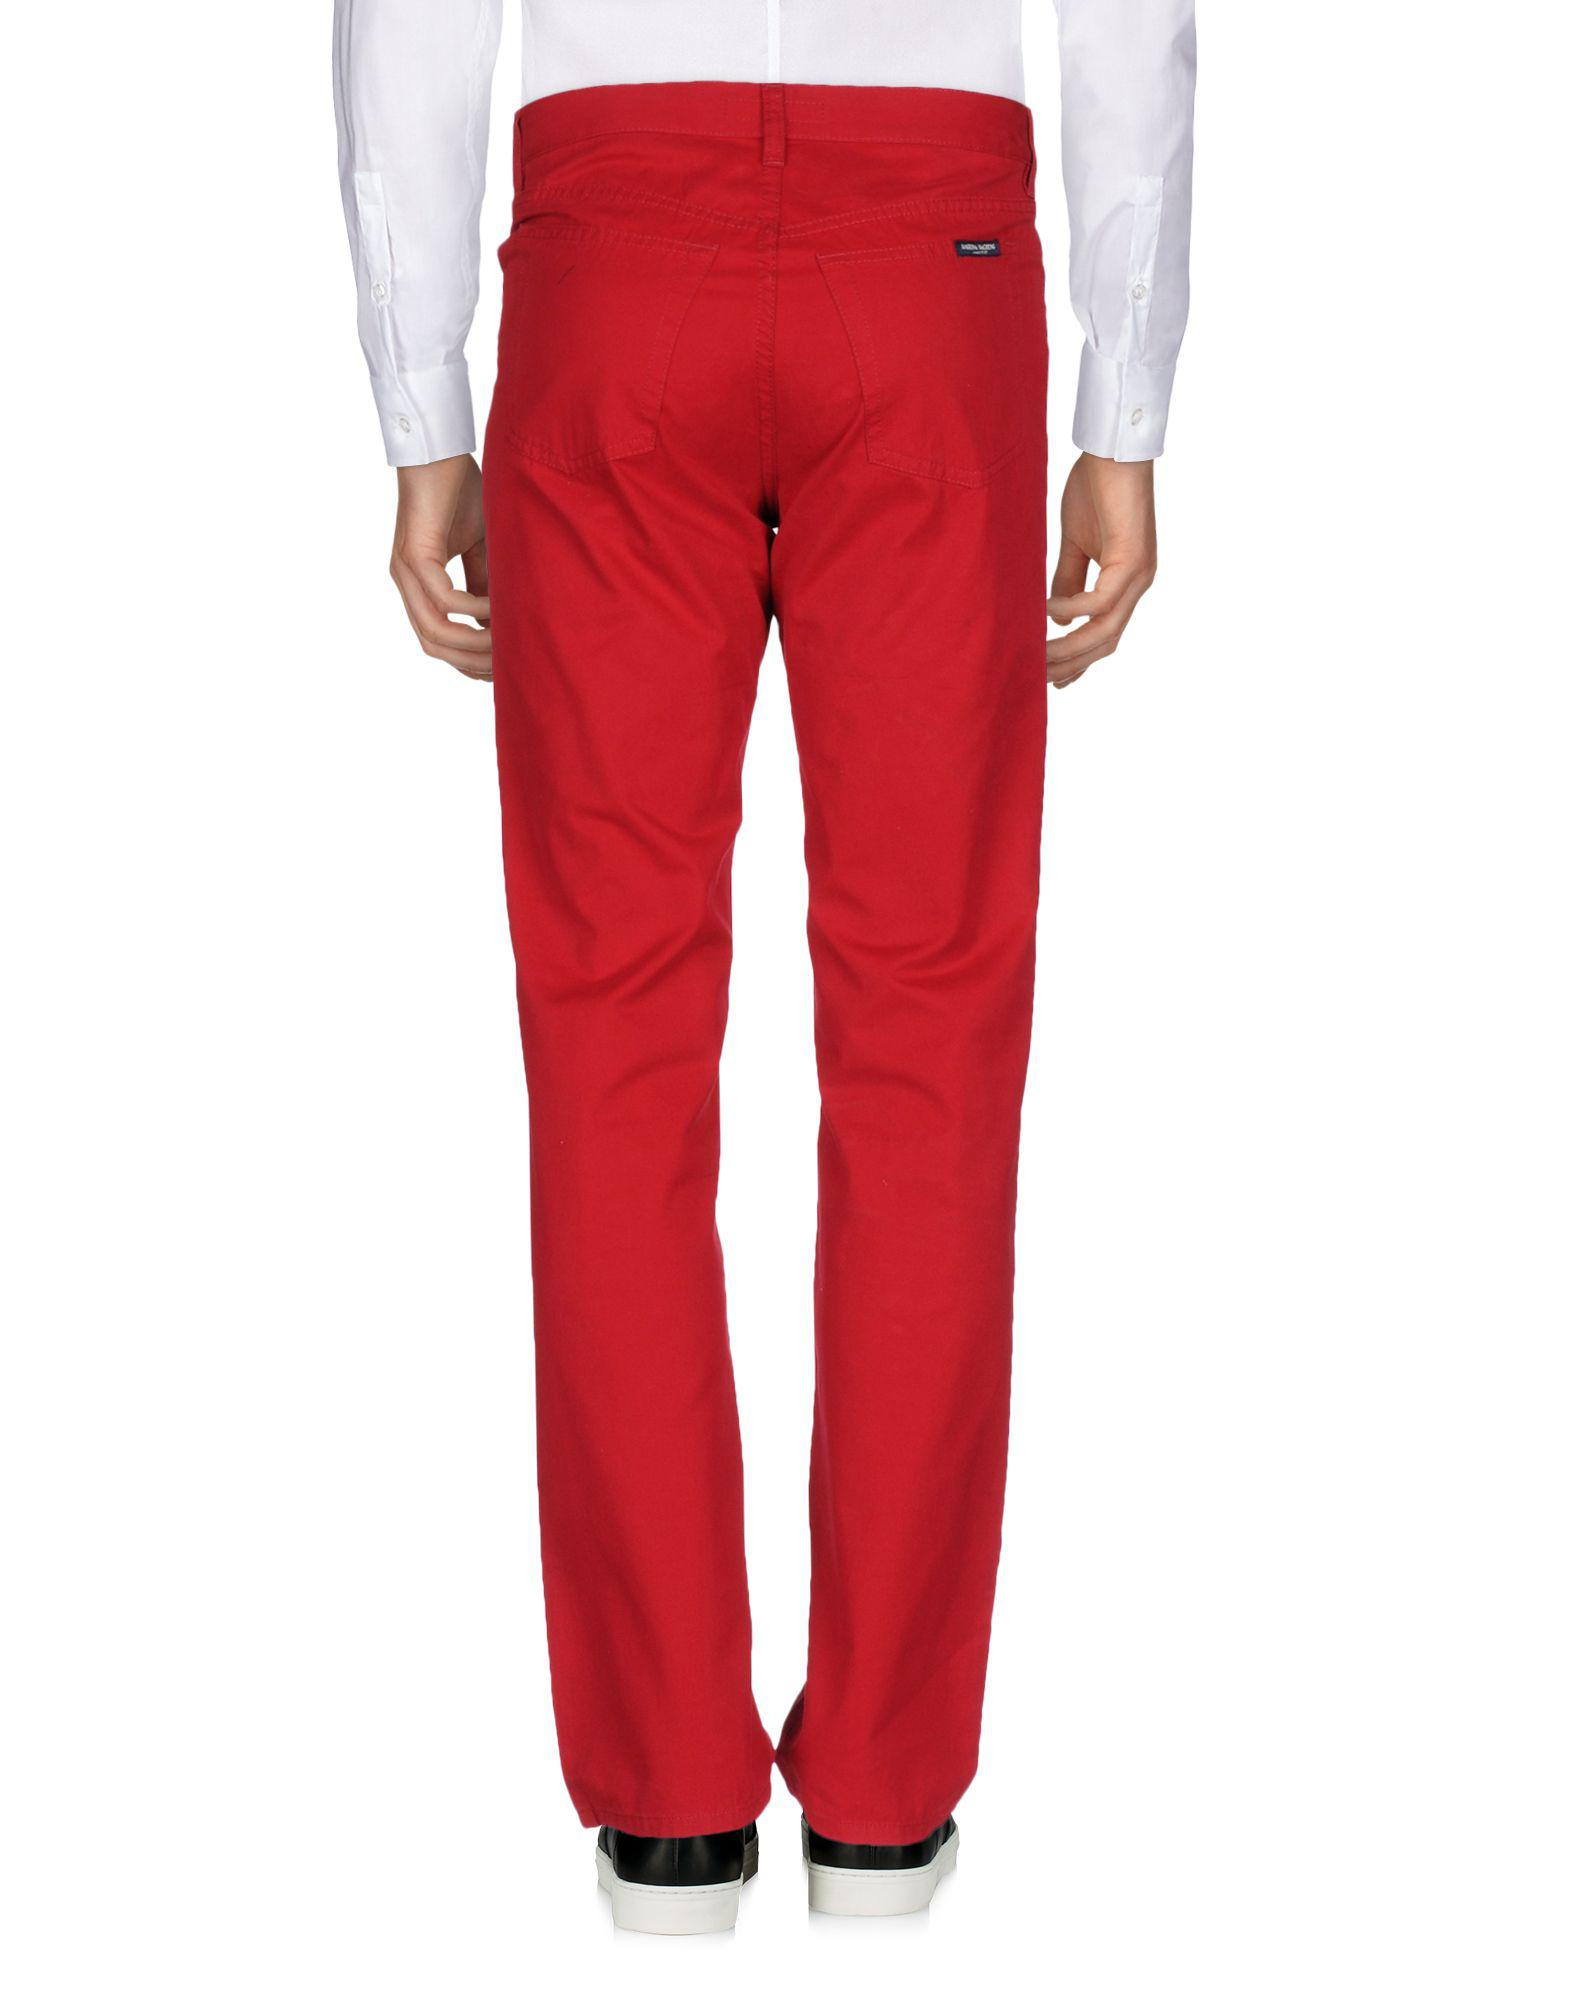 Marina Yachting Cotton Casual Trouser in Red for Men